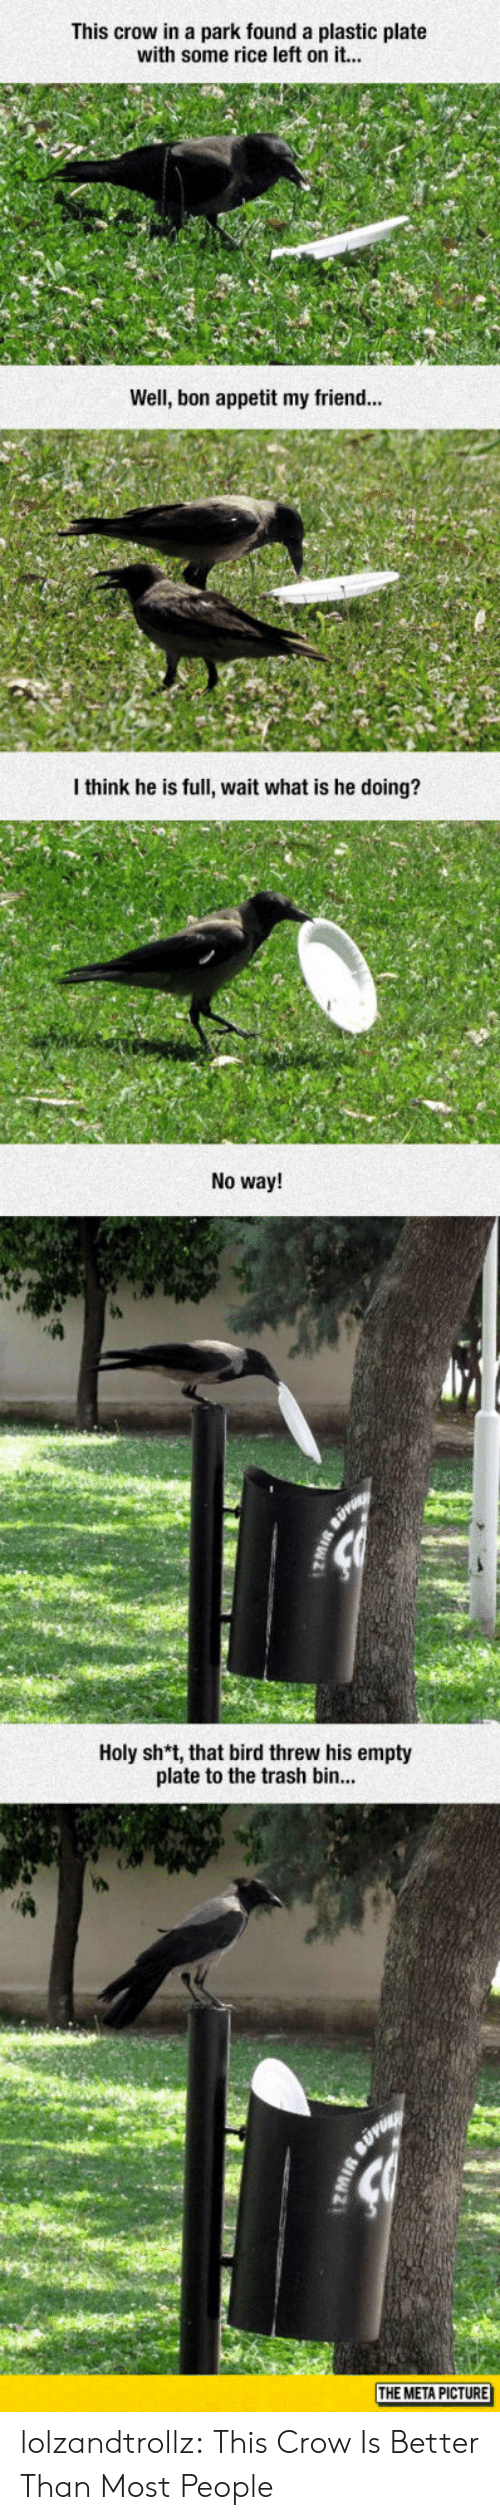 Trash, Tumblr, and Blog: This crow in a park found a plastic plate  with some rice left on it...  Well, bon appetit my friend...  I think he is full, wait what is he doing?  No way!  Holy sh*t, that bird threw his empty  plate to the trash bin  THE META PICTURE lolzandtrollz:  This Crow Is Better Than Most People